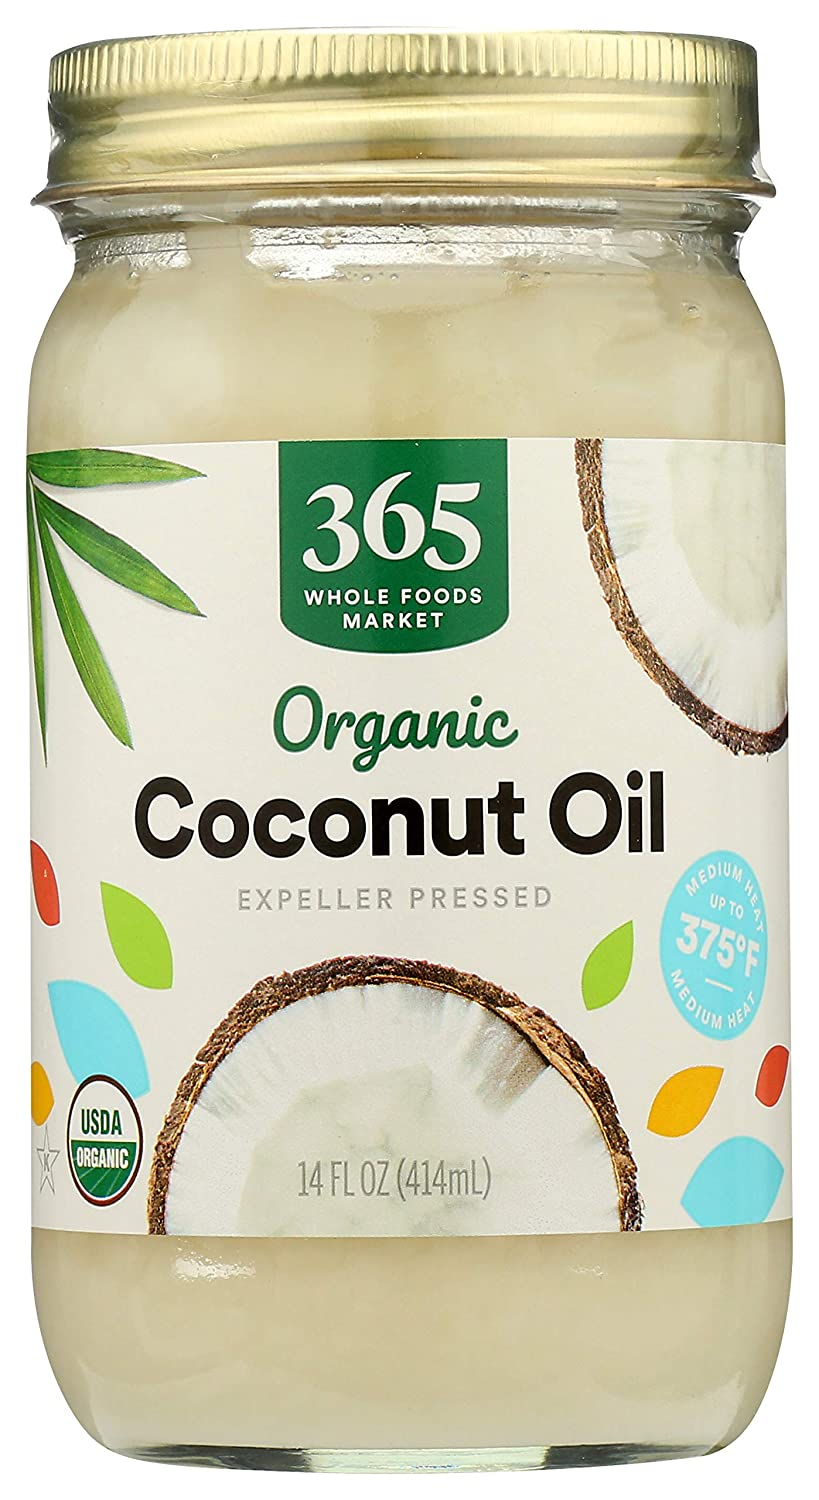 365 Every Day Value Organic Coconut Oil Image